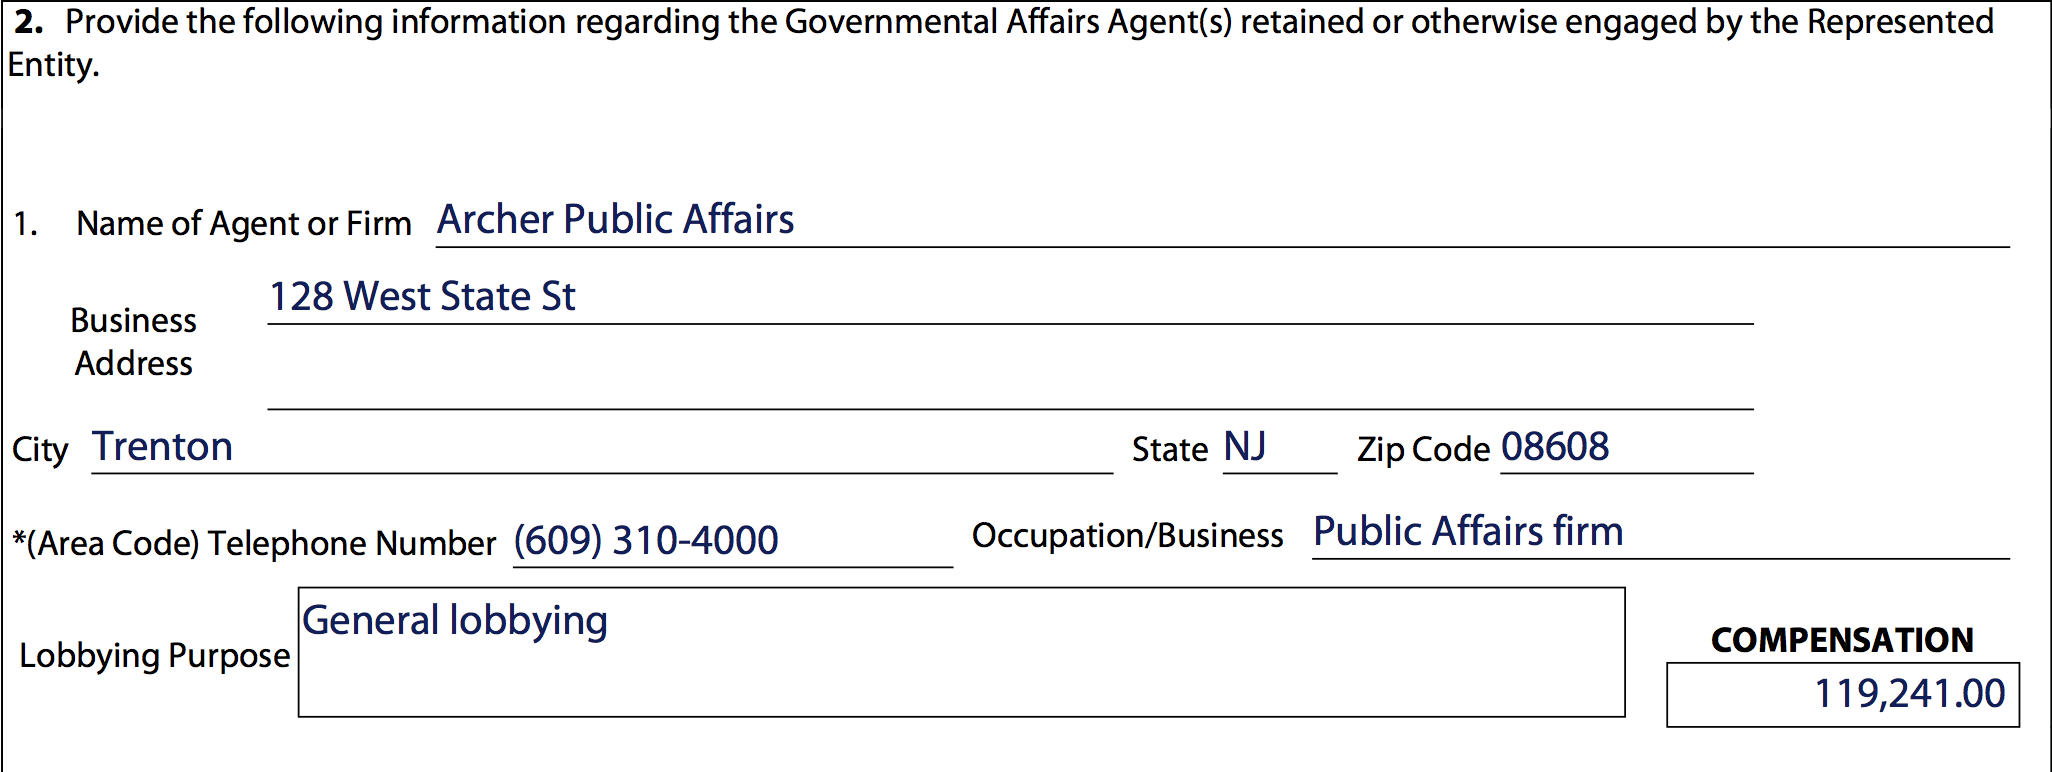 Payment to Archer Public Affairs reported on AICUNJ's 2016 lobbying disclosure.